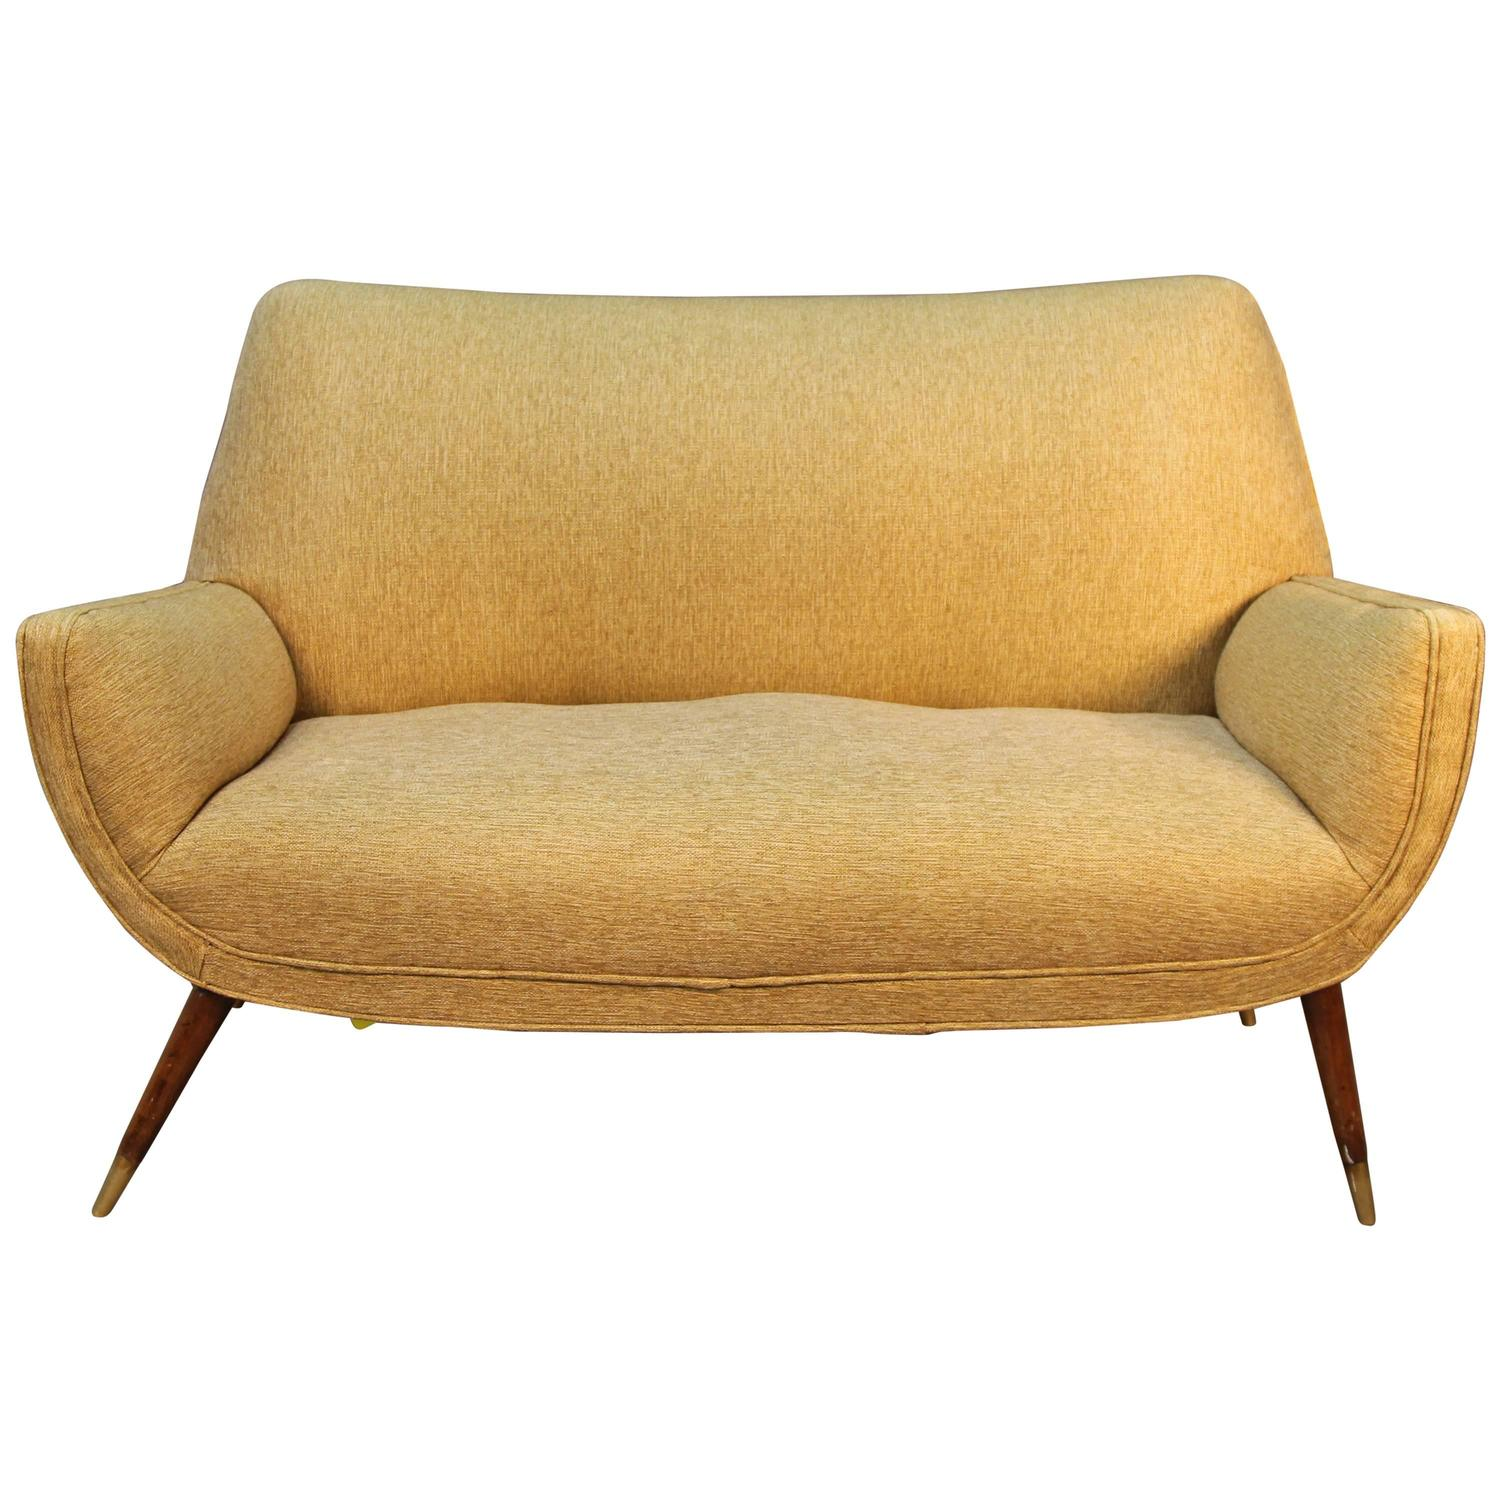 Mid Century Modern Upholstered Loveseat For Sale At 1stdibs